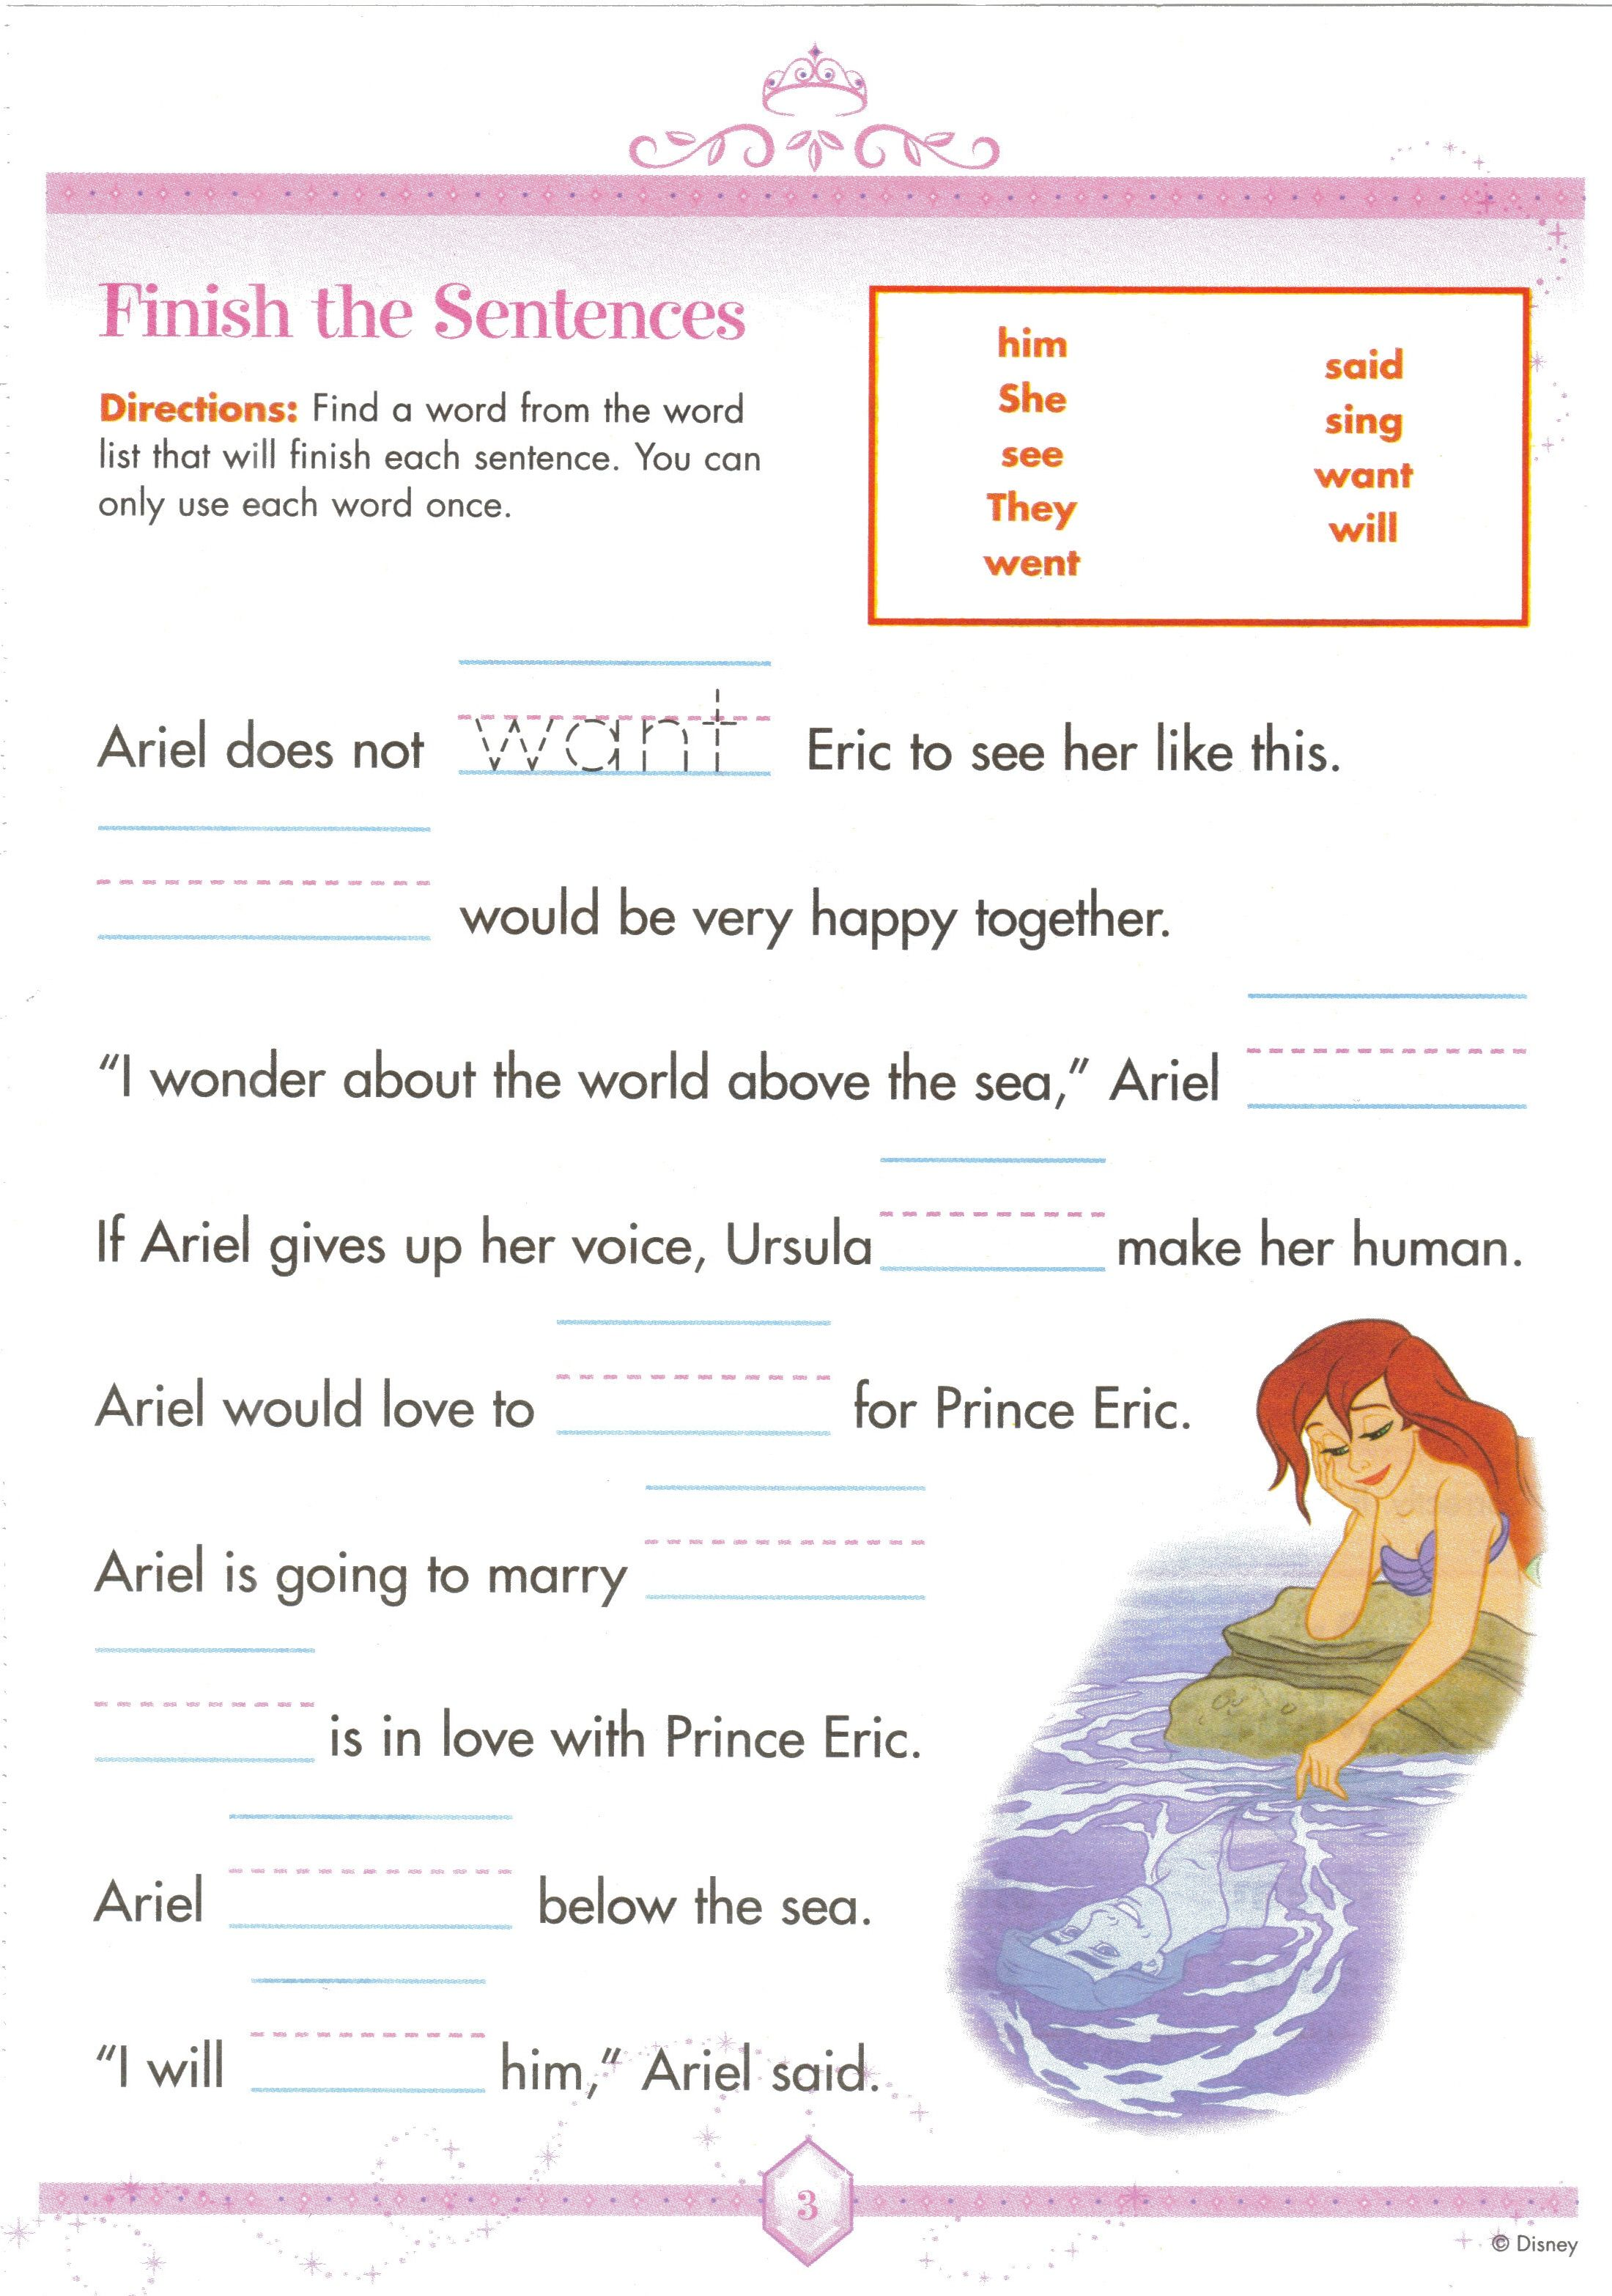 Weirdmailus  Outstanding  Images About Worksheets On Pinterest  Fun Facts For Kids  With Exquisite  Images About Worksheets On Pinterest  Fun Facts For Kids Earth Day Worksheets And Jungles With Delightful Make Ten Worksheets Also Adding Fractions Worksheets With Answers In Addition Factoring Trinomials Of The Form X Bx C Worksheet And Reading Graduated Cylinder Worksheet As Well As Personification Worksheets Th Grade Additionally Nd Grade Sight Word Worksheets From Pinterestcom With Weirdmailus  Exquisite  Images About Worksheets On Pinterest  Fun Facts For Kids  With Delightful  Images About Worksheets On Pinterest  Fun Facts For Kids Earth Day Worksheets And Jungles And Outstanding Make Ten Worksheets Also Adding Fractions Worksheets With Answers In Addition Factoring Trinomials Of The Form X Bx C Worksheet From Pinterestcom